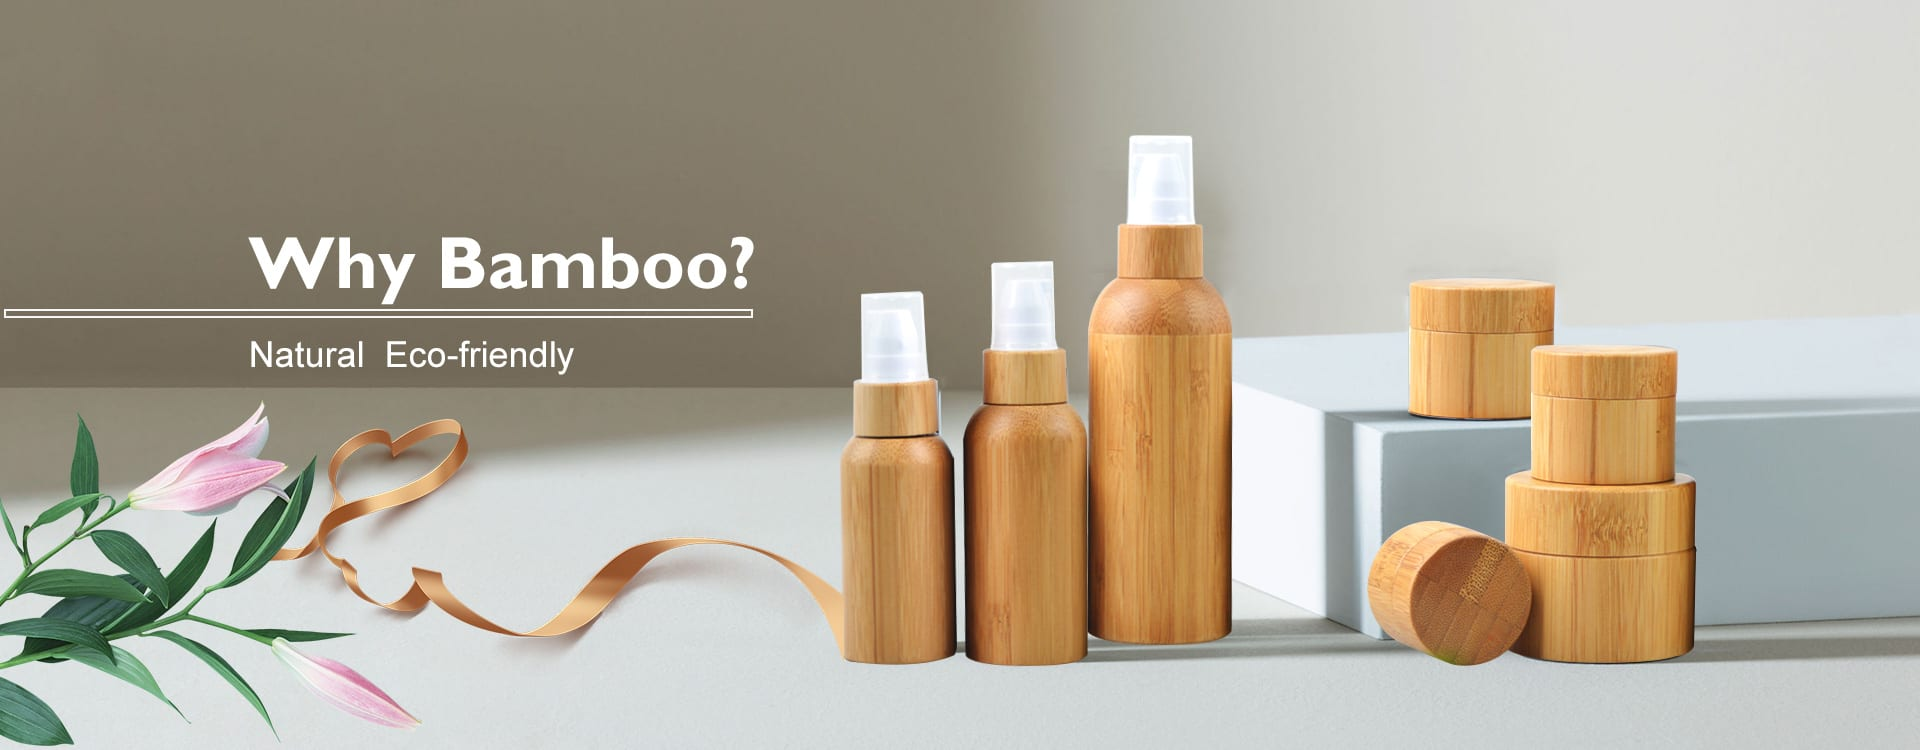 Why Bamboo?